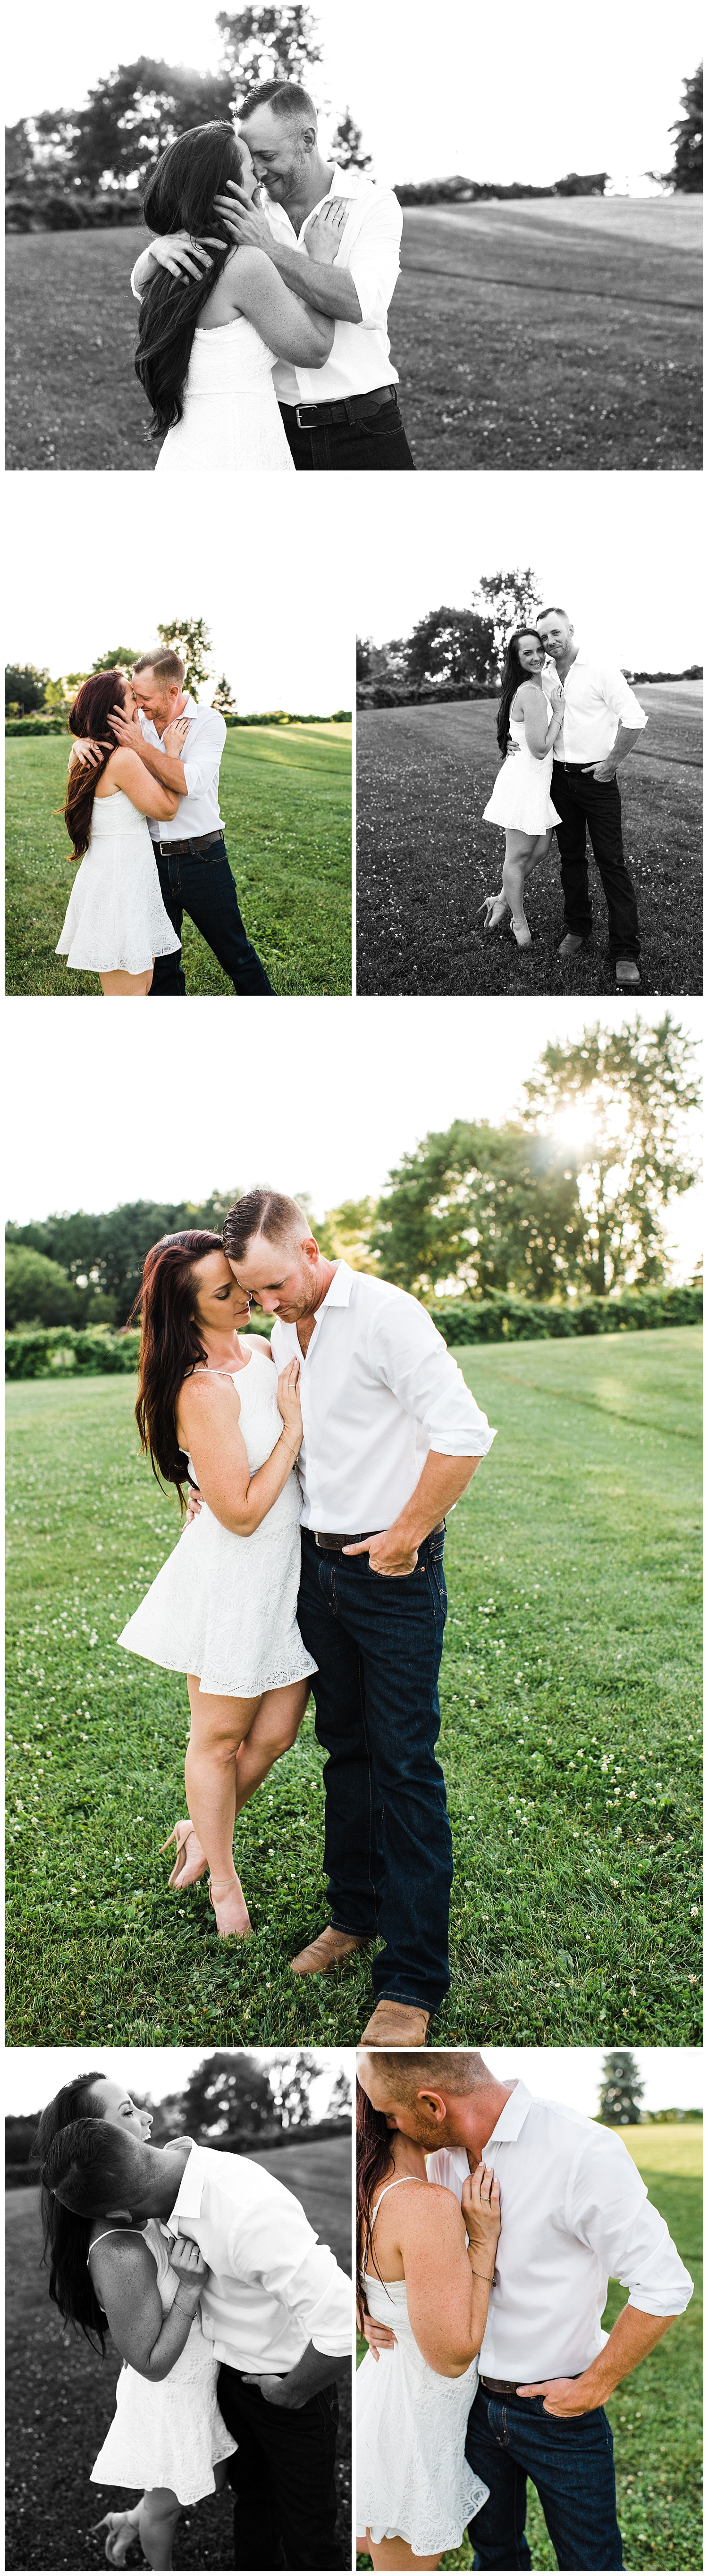 Easterday Creative | Adventurous wedding photographer and storyteller | Maize Valley Winery Engagement Session